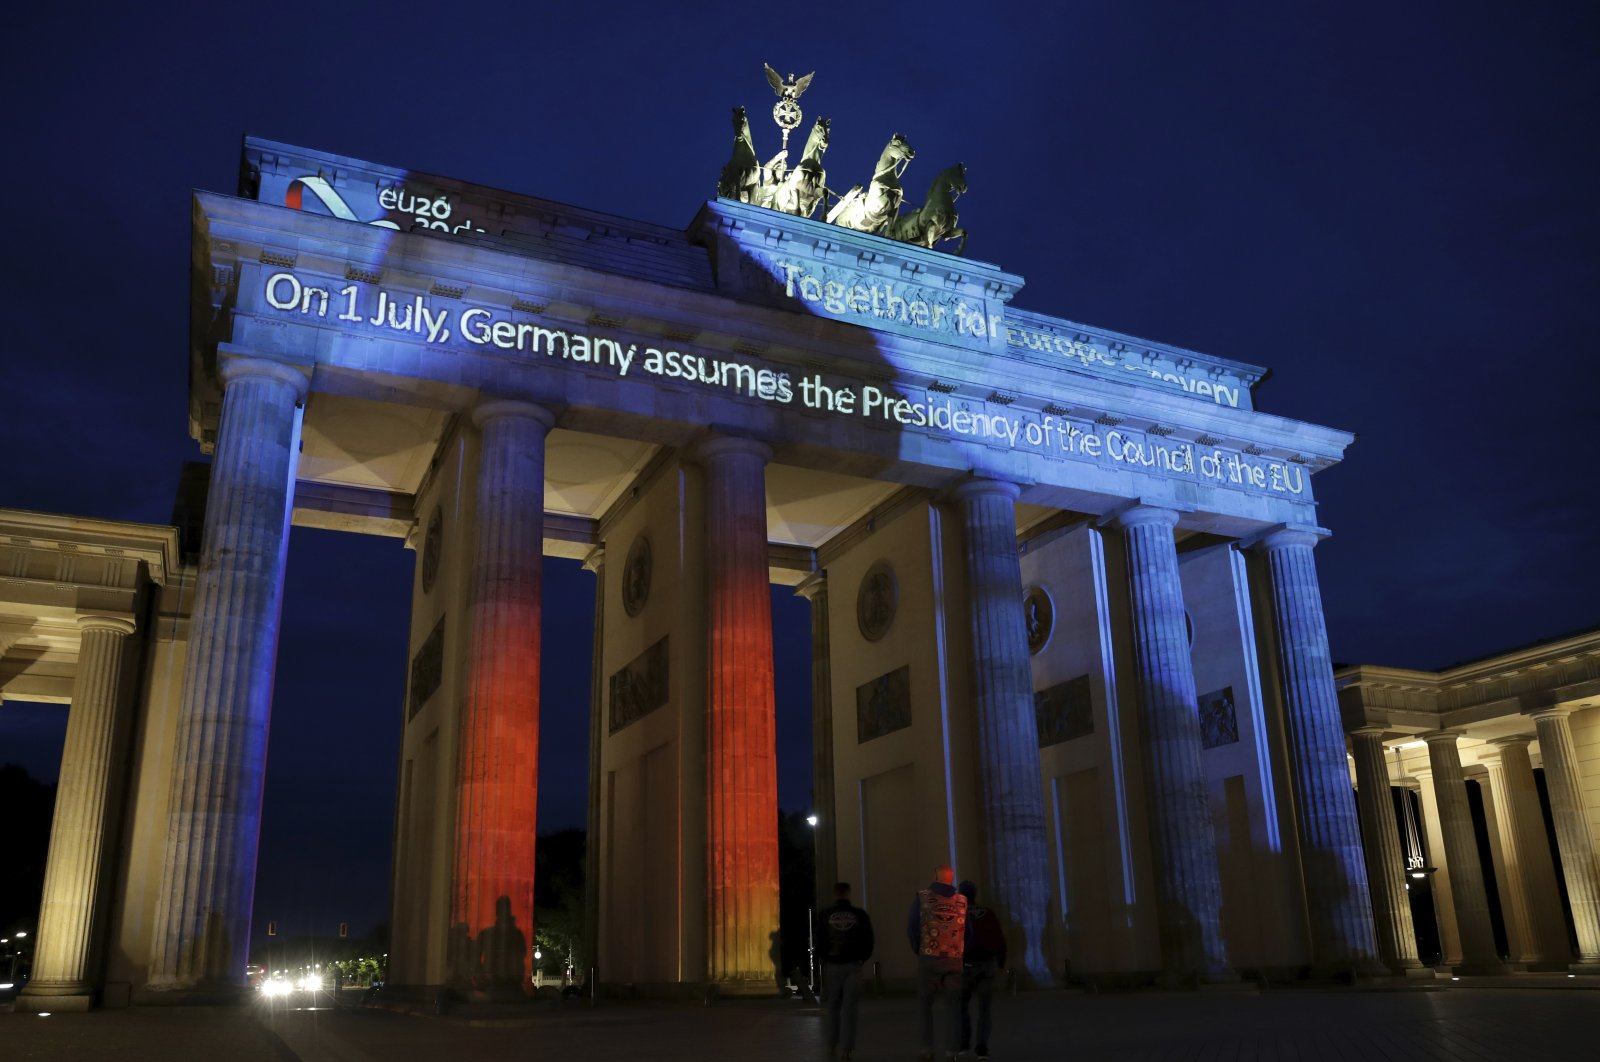 """The Brandenburg Gate is illuminated with the slogan """"On 1 July, Germany assumes the Presidency of the Council of the EU"""" on the eve of the official start of Germany's six-month EU presidency, in Berlin, Germany, June 30, 2020. (AP Photo)"""